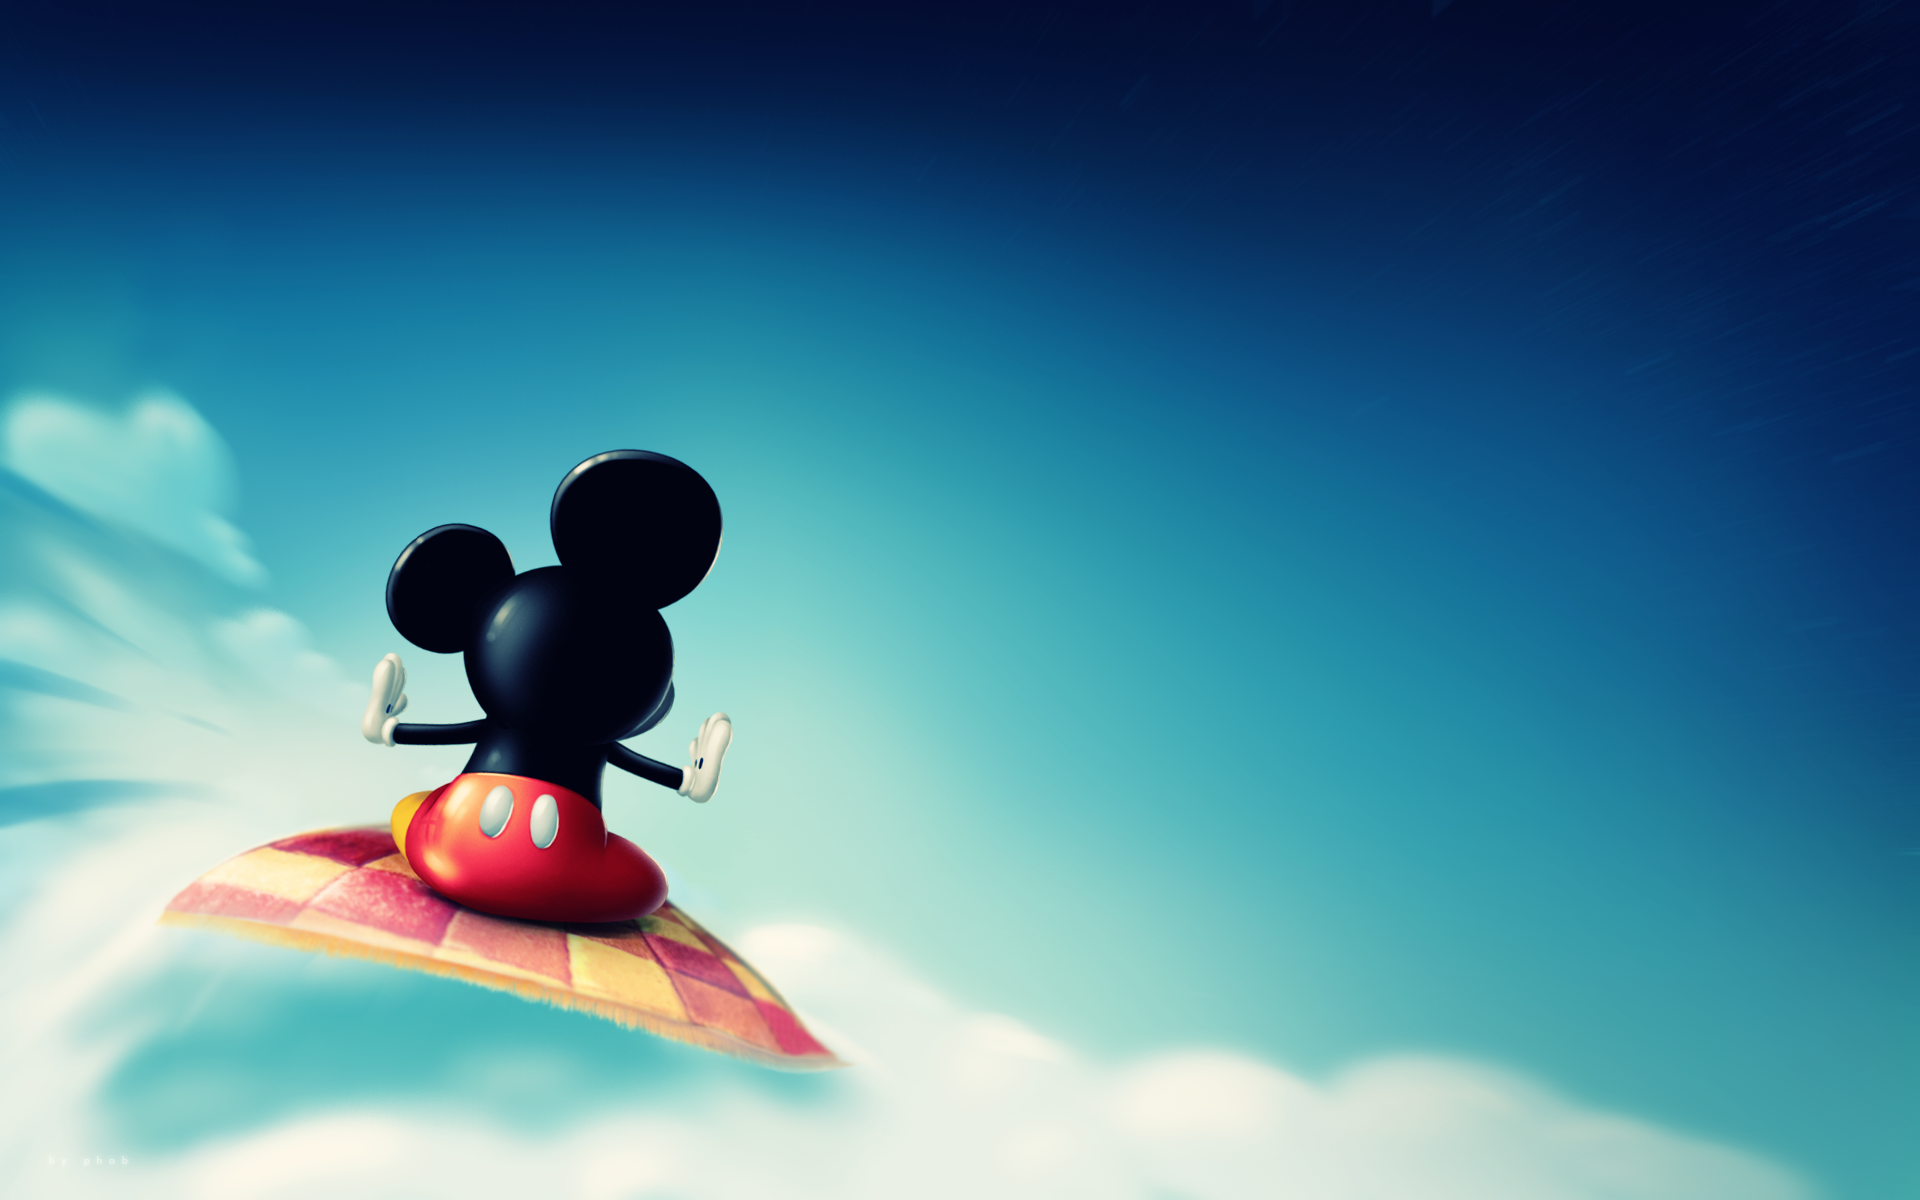 HD Wallpaper Disney Download 1920x1200